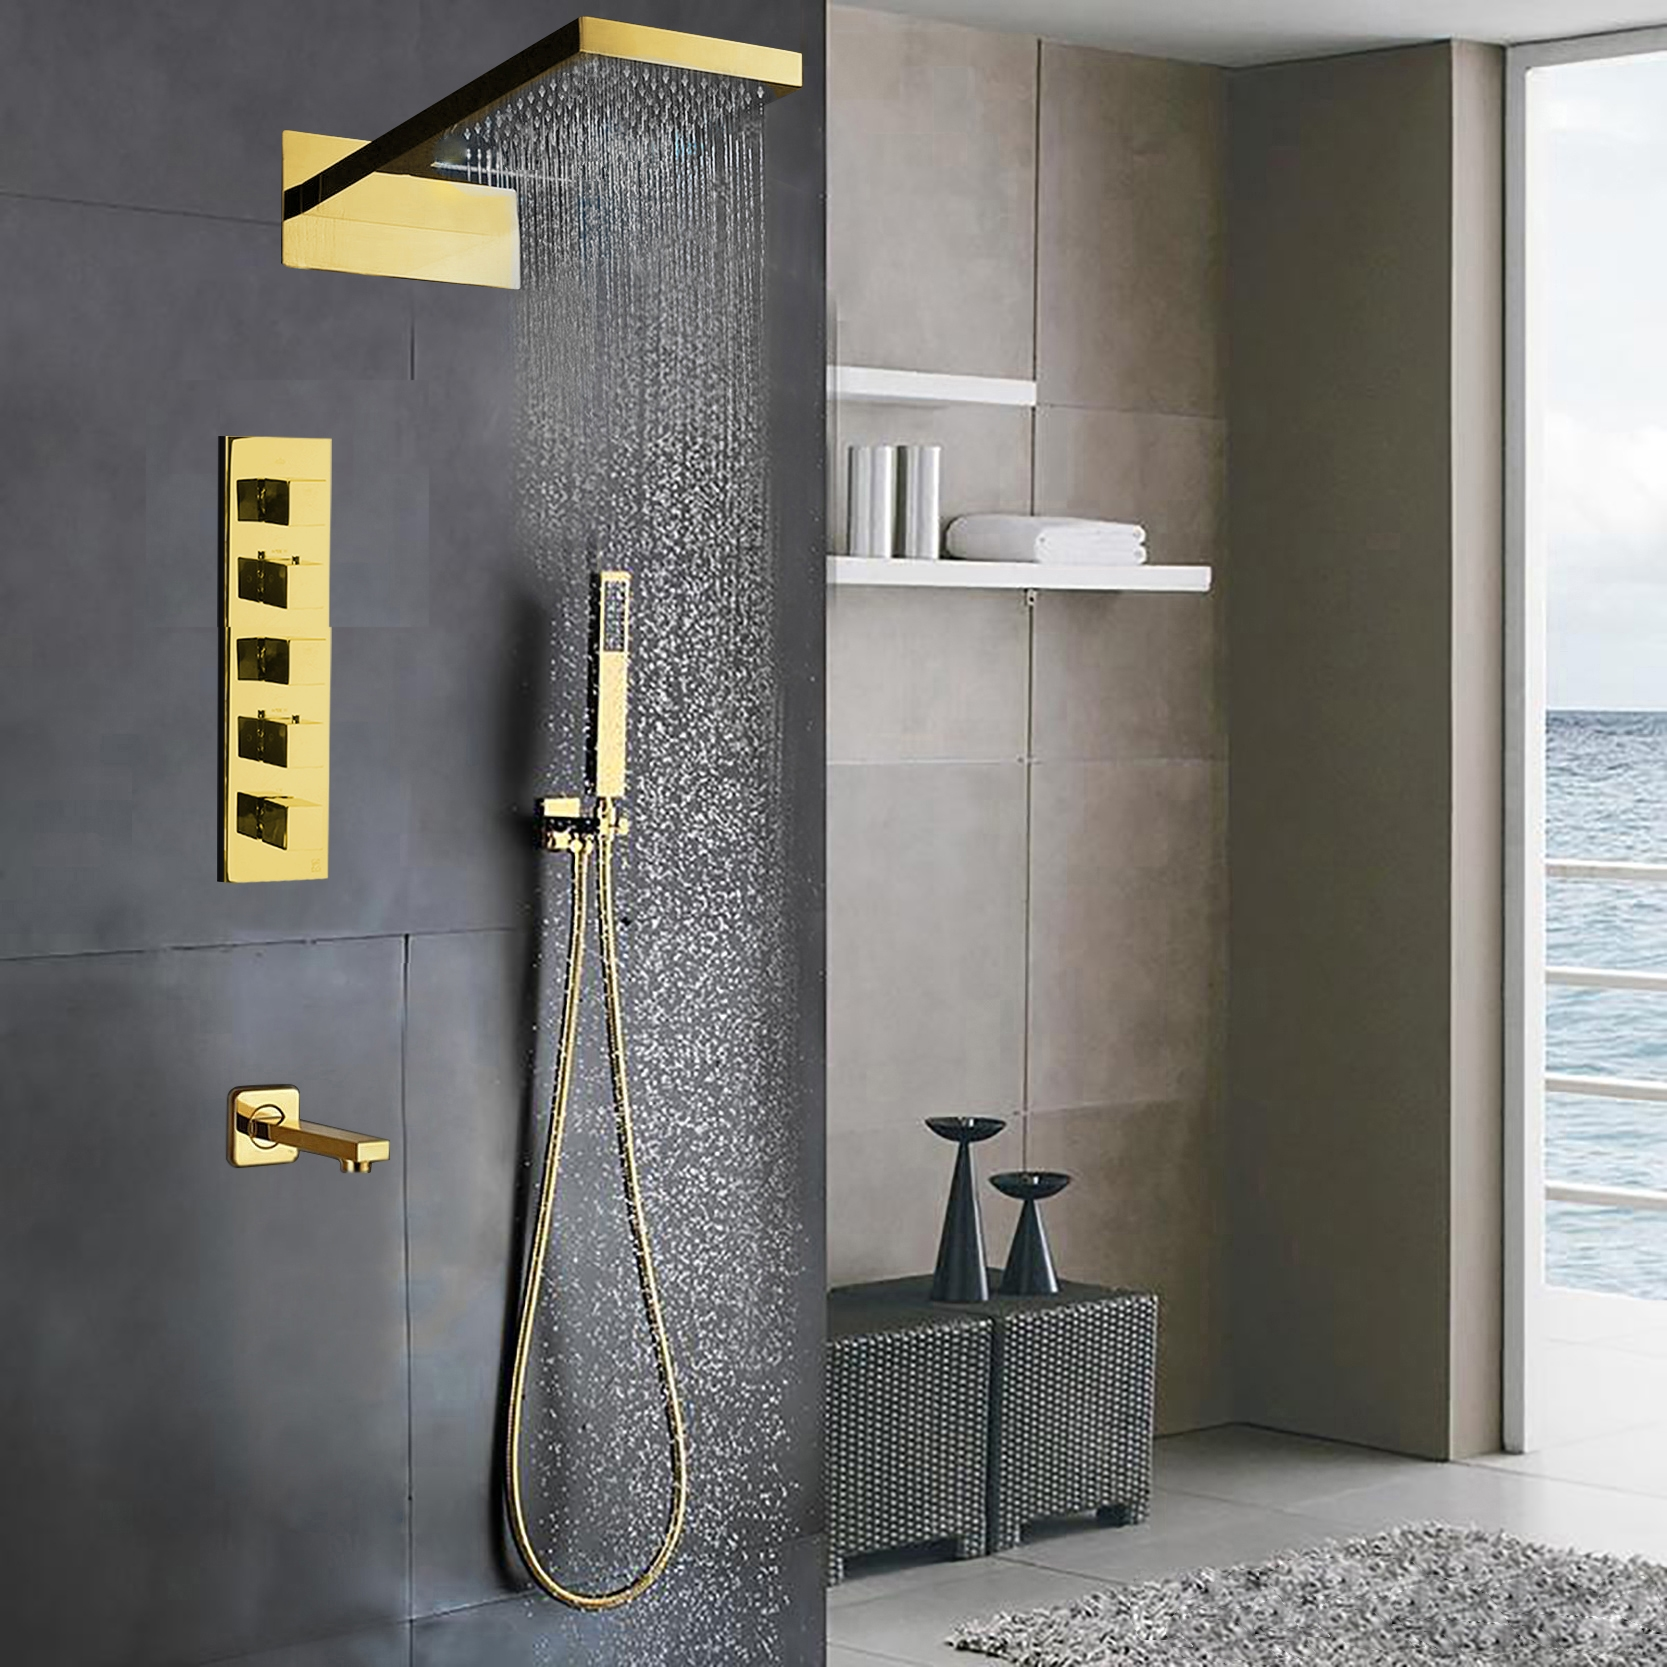 Designer Gold Finish Wall Mount Shower Set With Handheld Shower Head